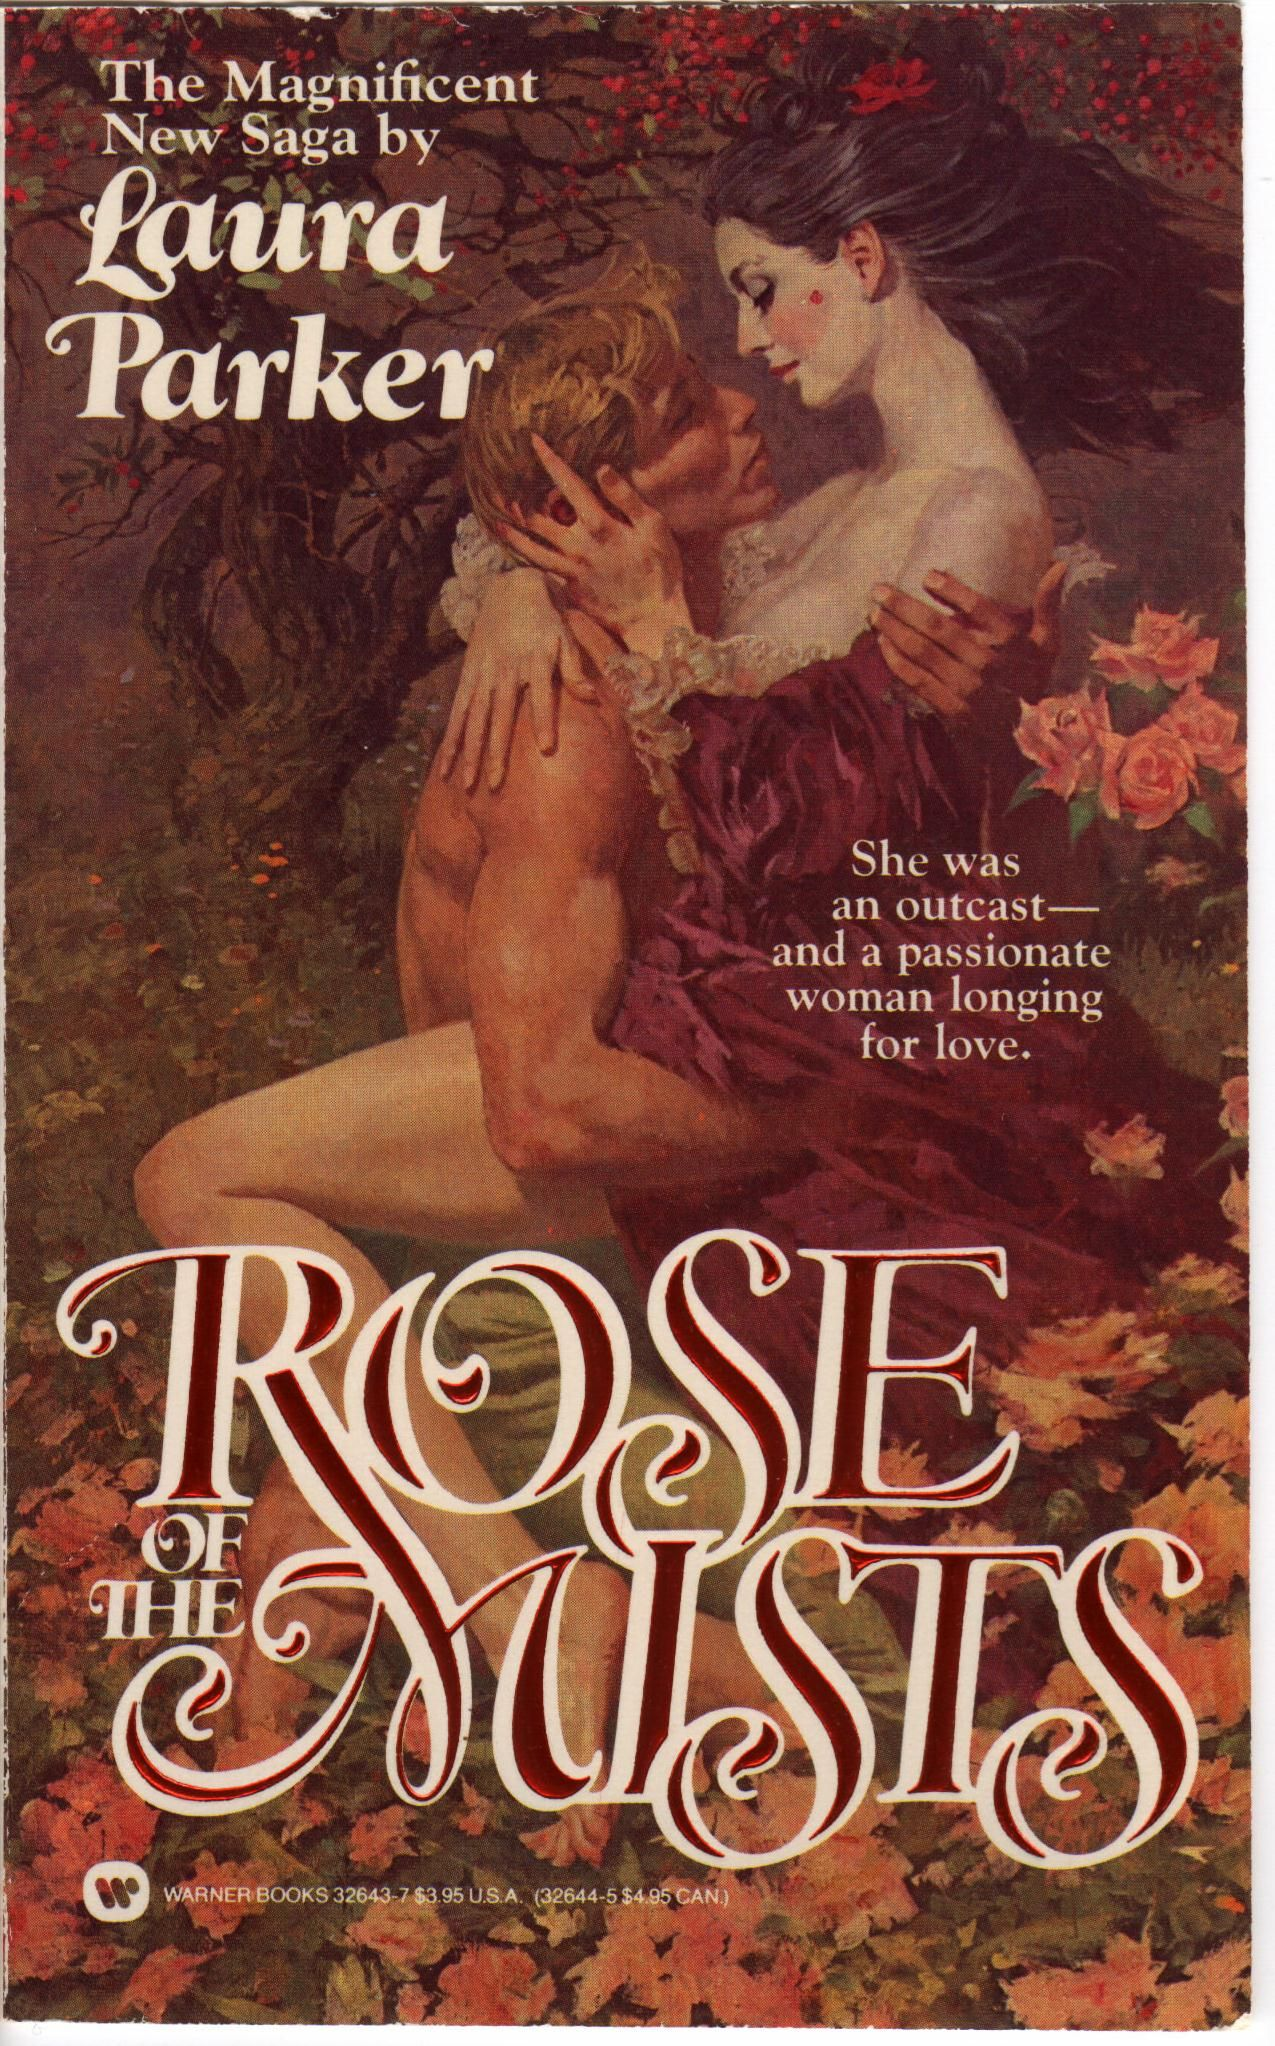 Pin On Historical Romance Book Covers I Love